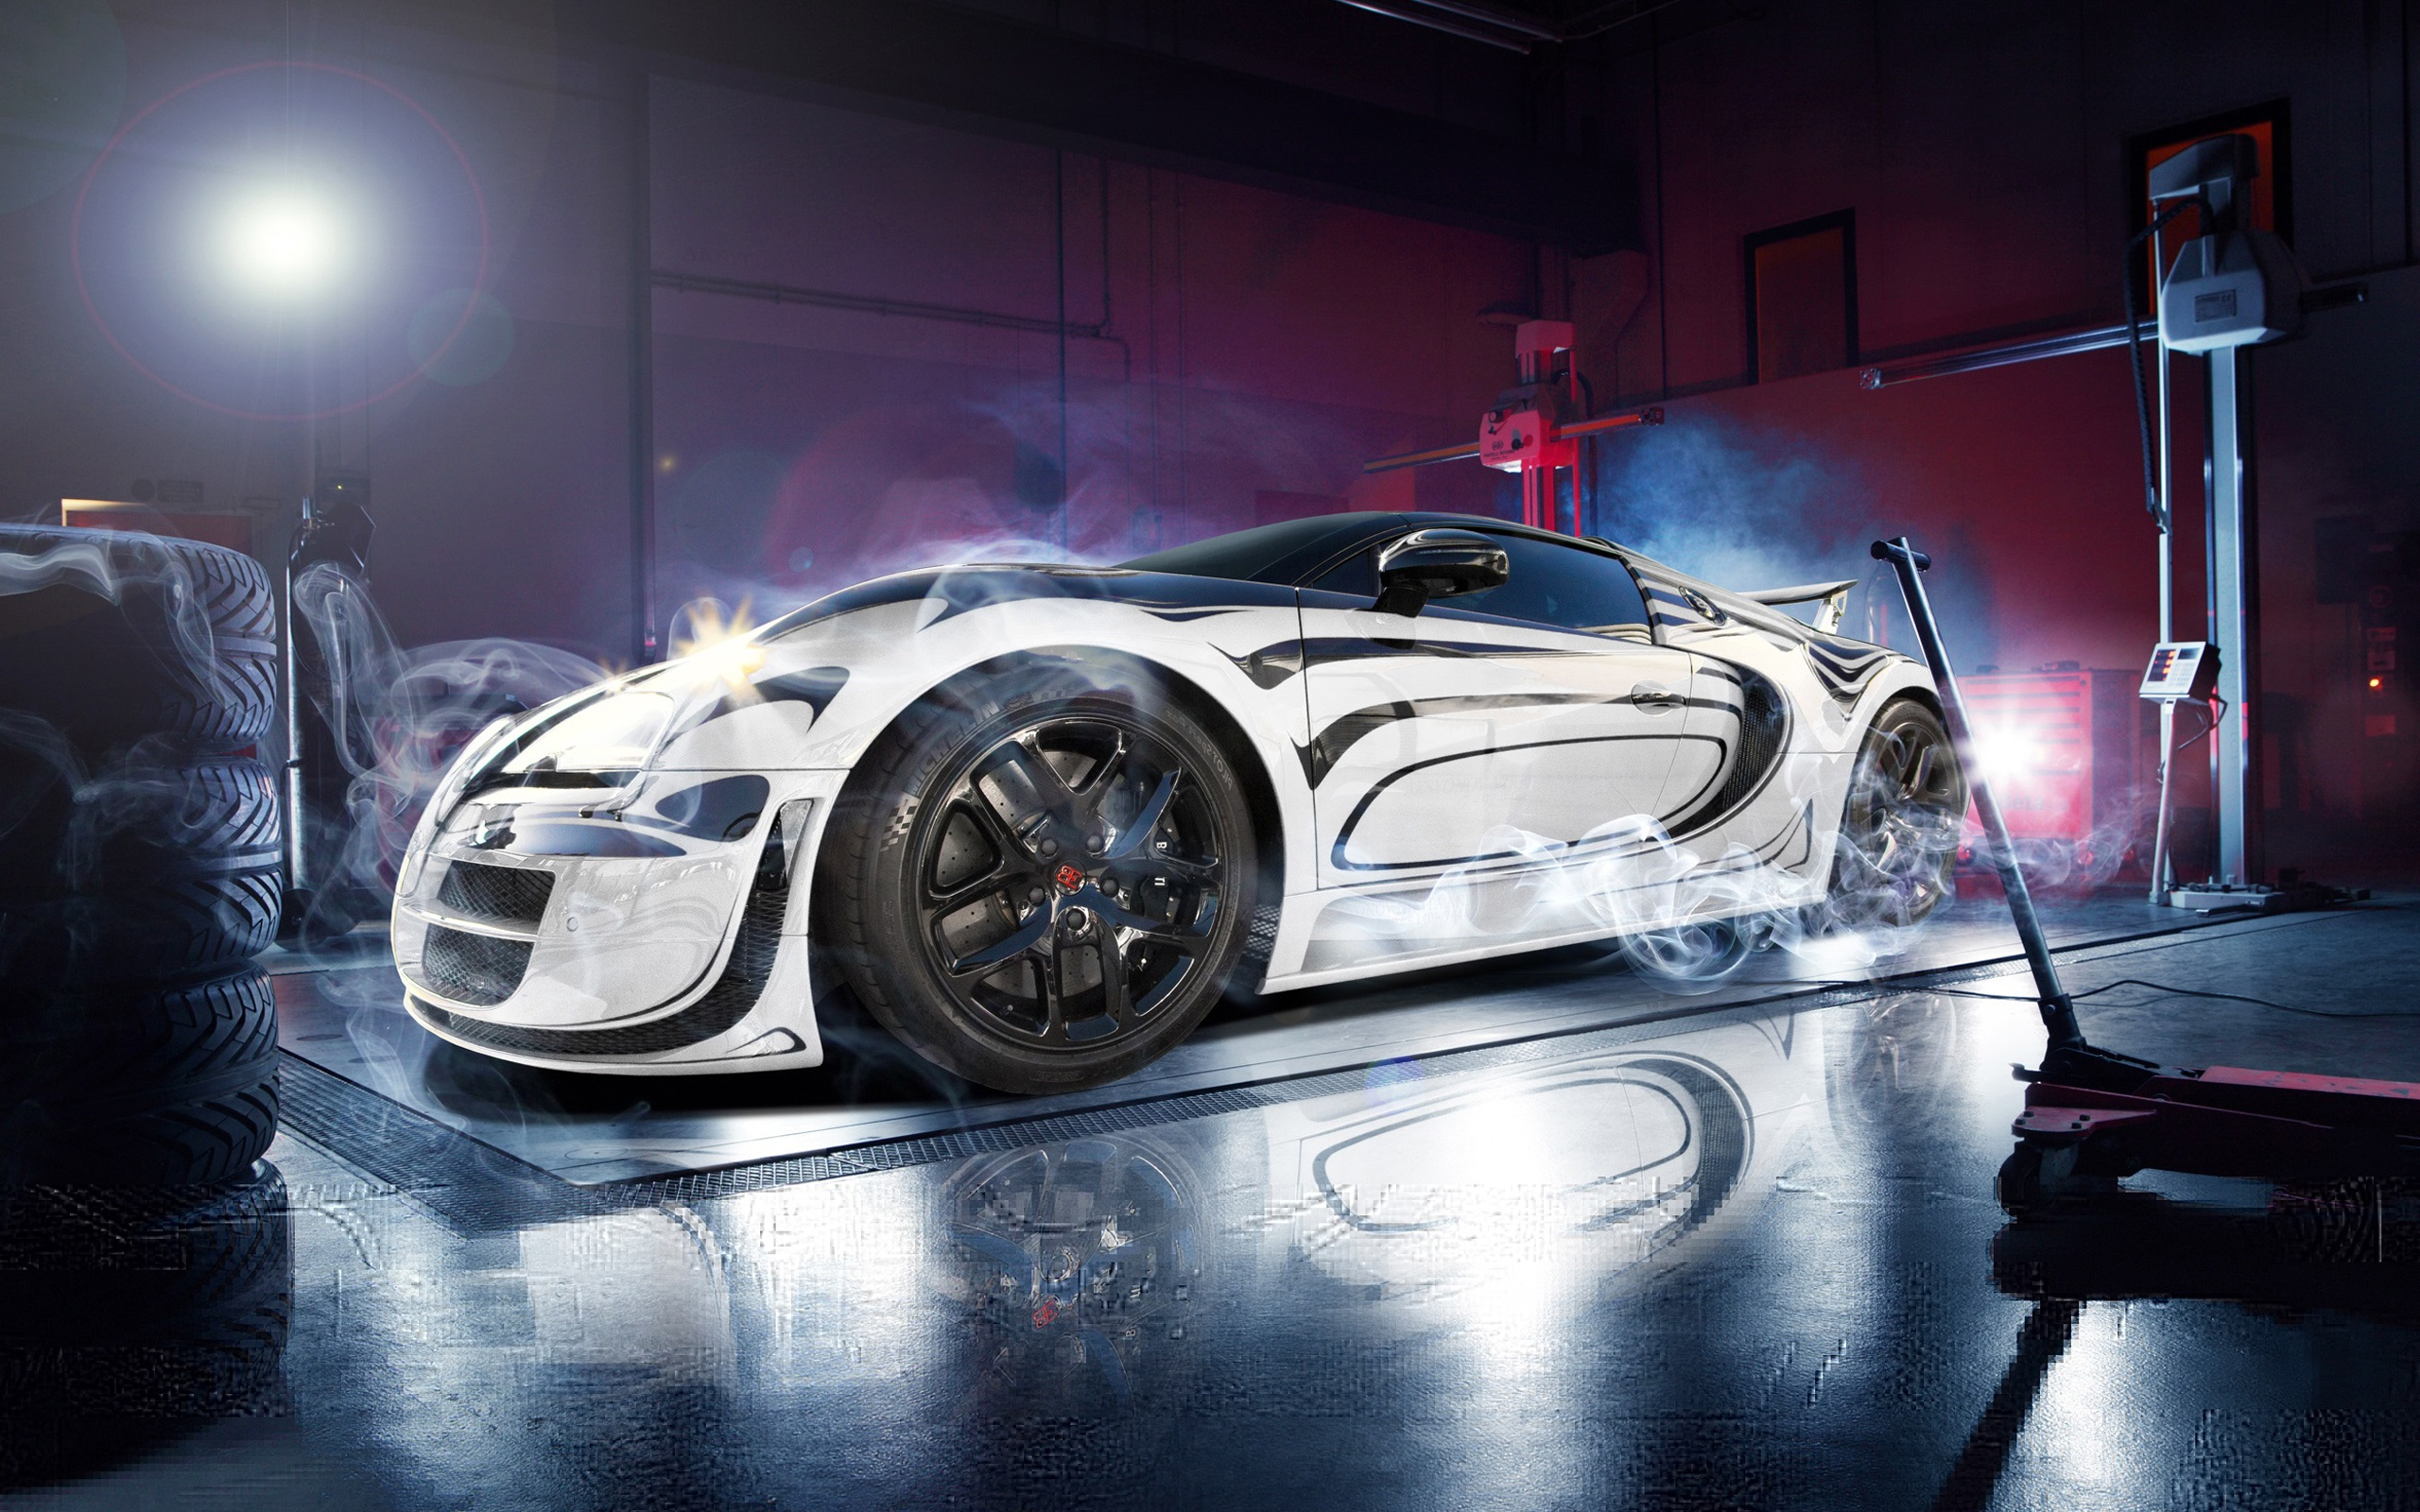 Bugatti Veyron Super Car Wallpapers In Jpg Format For Free Download